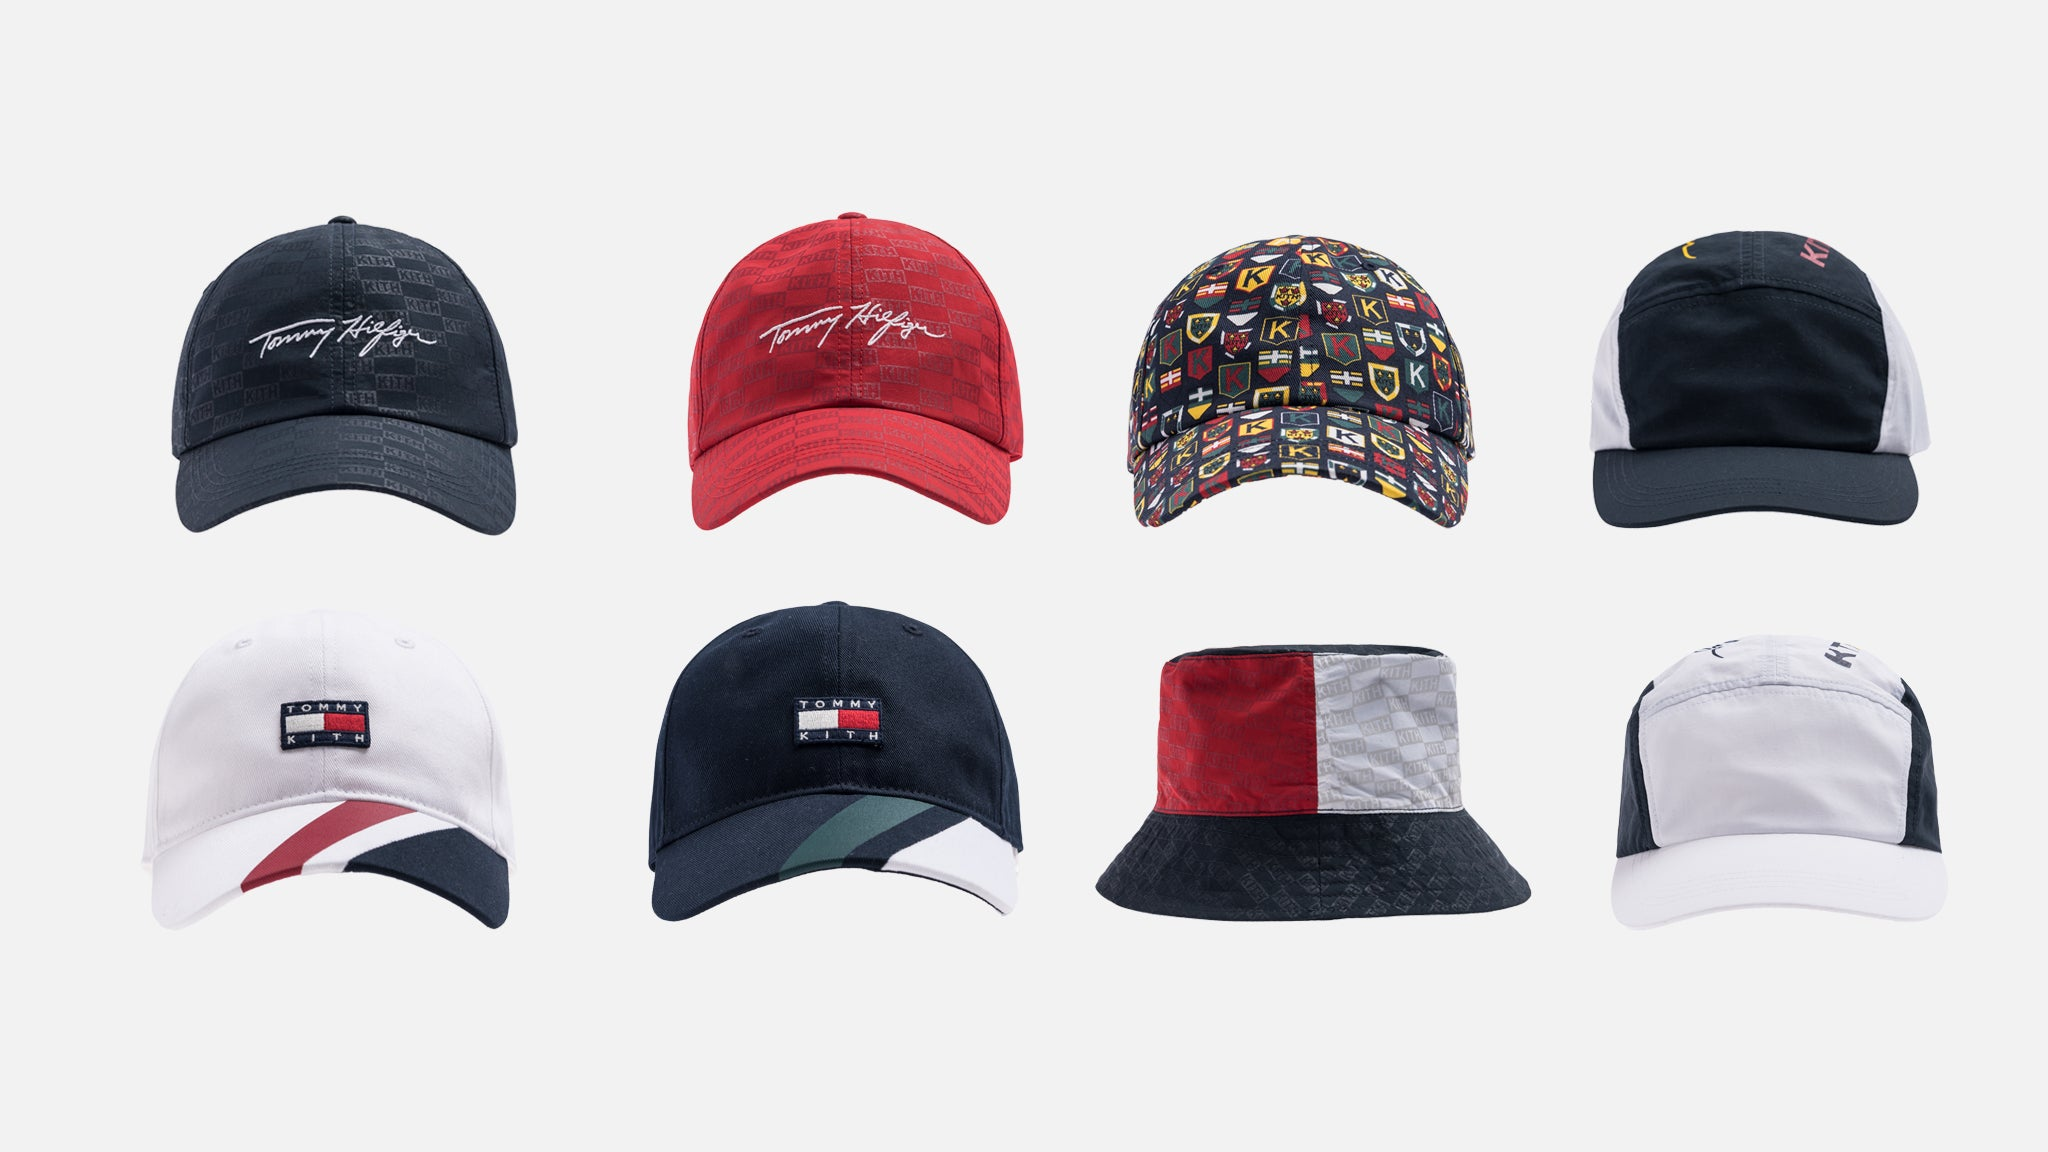 c4f880dcd0e83 A Closer Look at Kith x Tommy Hilfiger Part 2